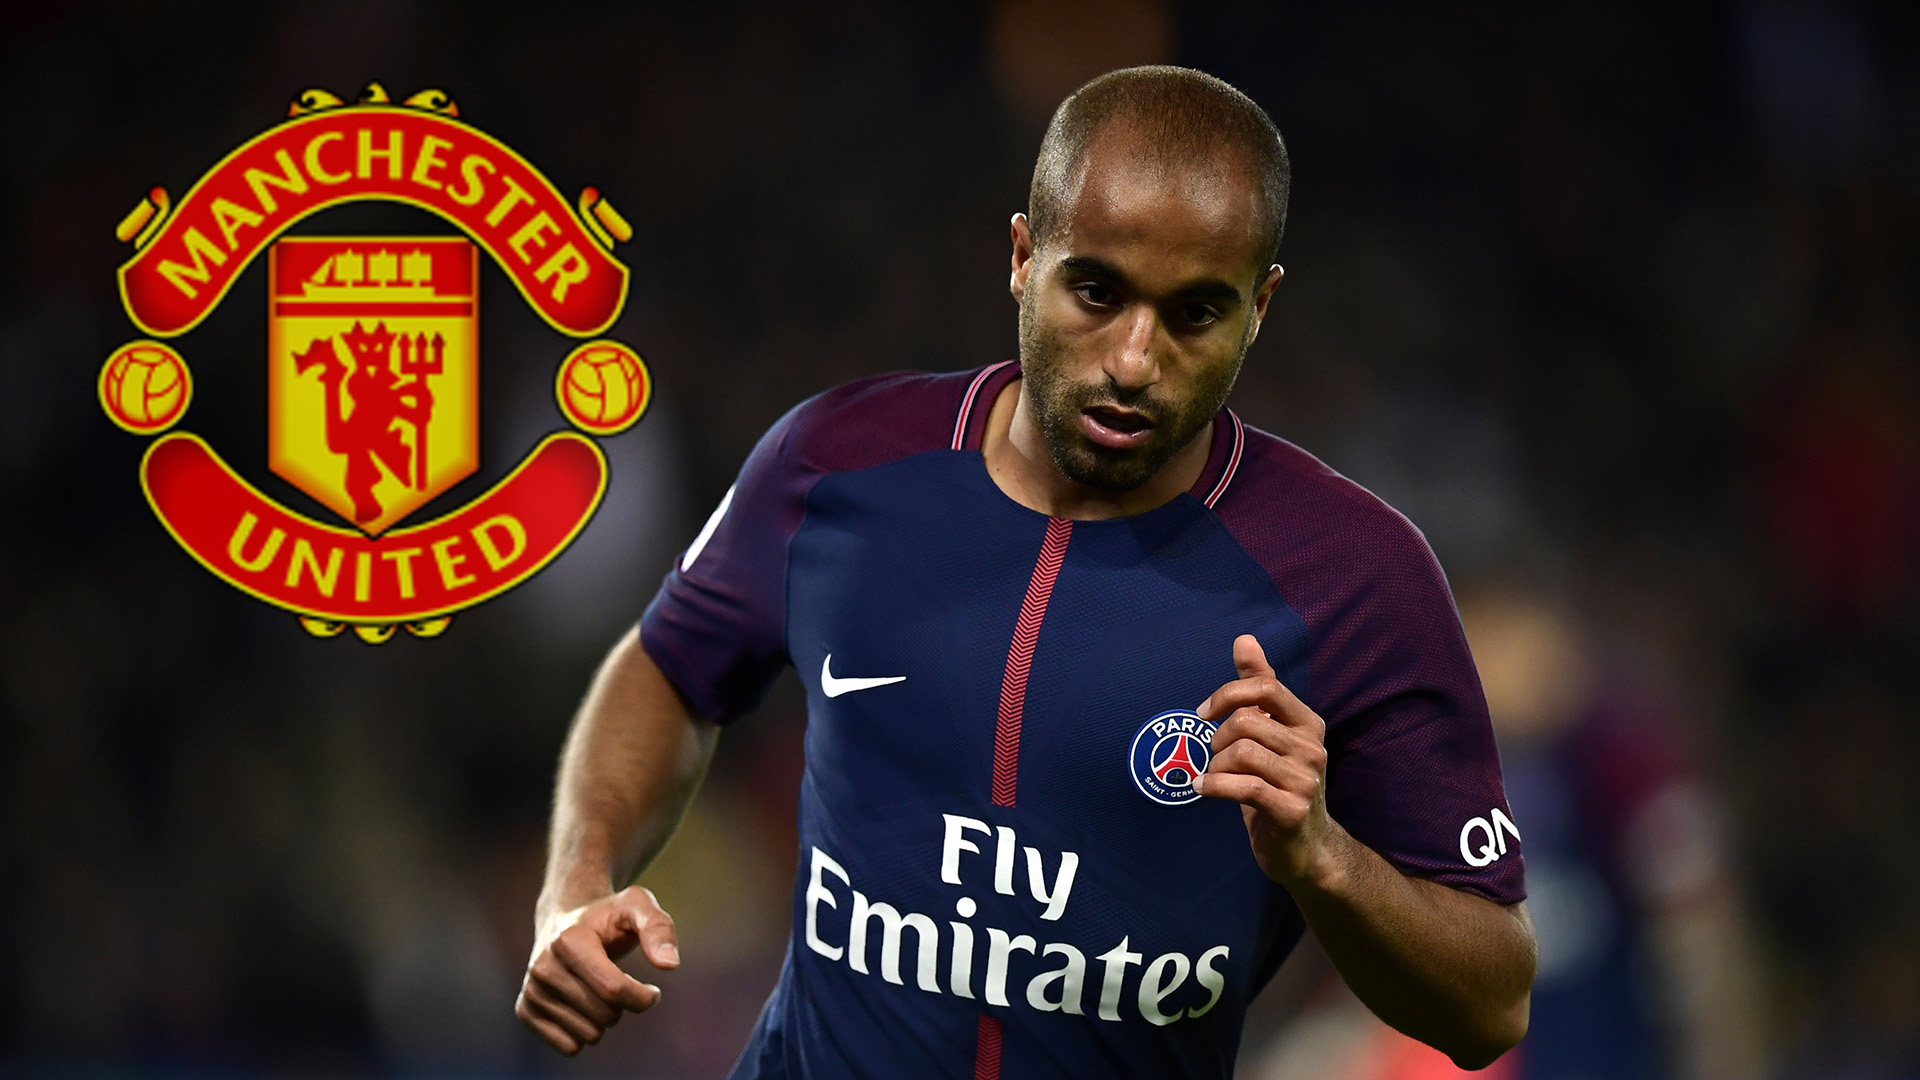 lucas moura - 03/1/2018 TRANSFER NEWS, DONE DEALS AND RUMOURS